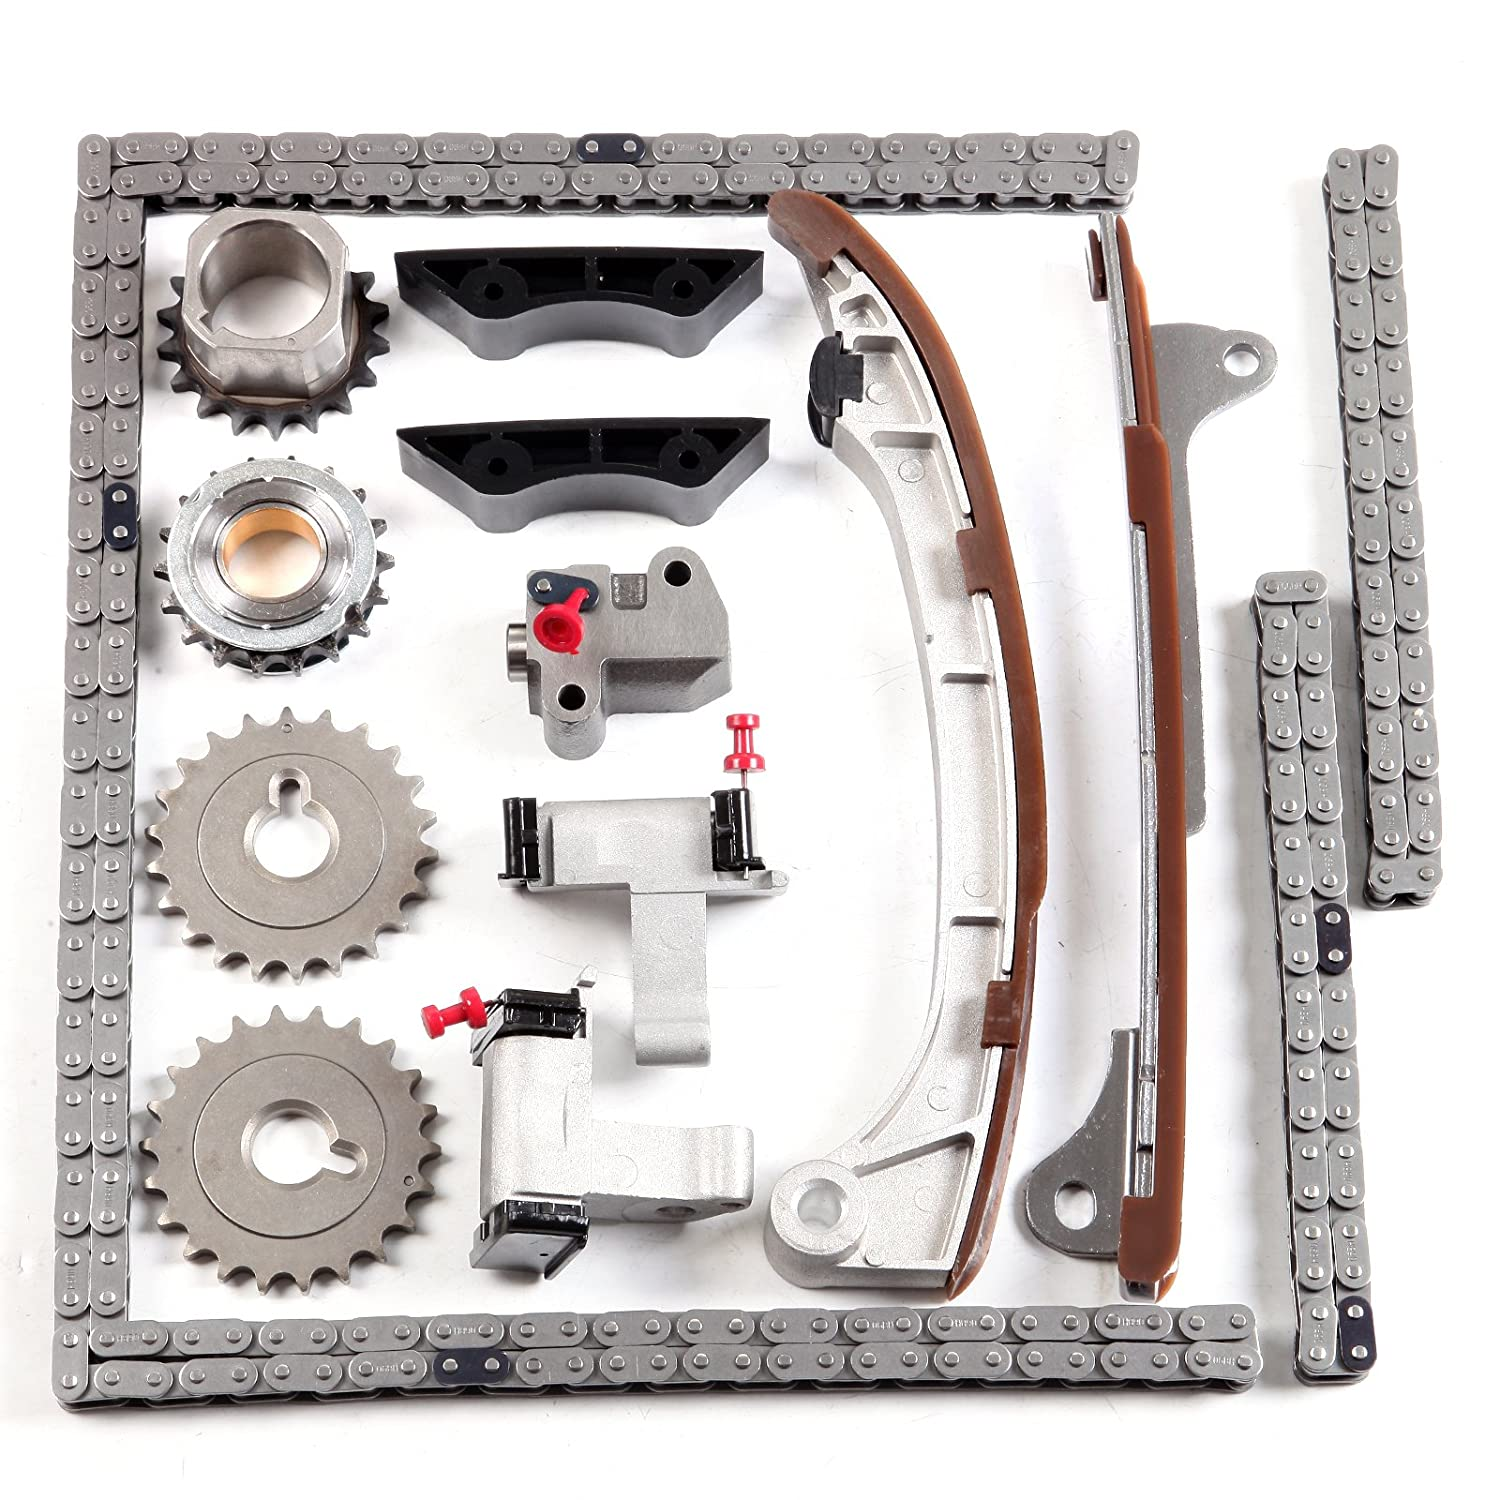 Timing Chain Kit ECCPP Automotive Replacement Timing Parts For 2007-2011 Cadillac Buick 3.6L 06-11 Saab 9-3 2.8L V6 DOHC